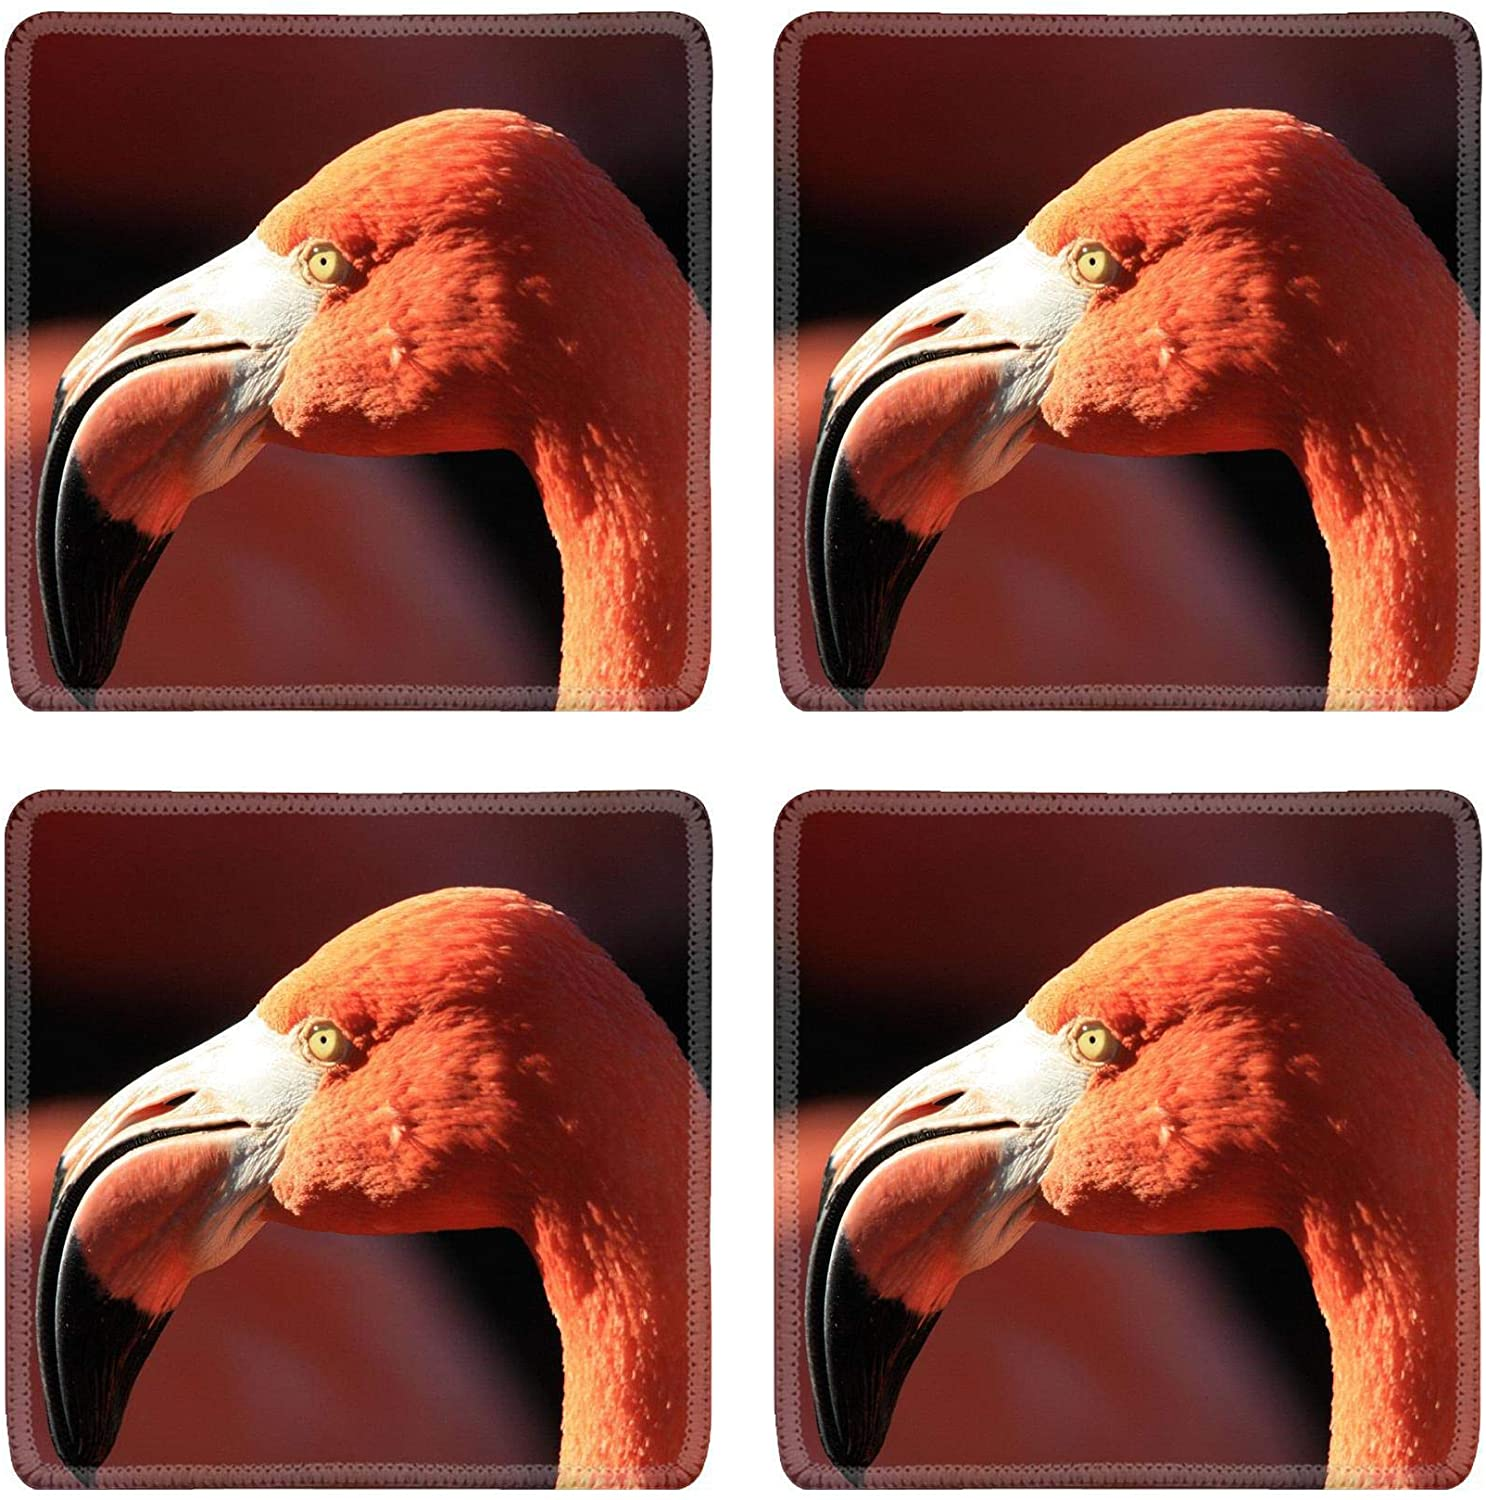 MSD Drink Coasters 4 Piece Set Image ID: Flamingo Image 33440752 Stain Resistance Collector Kit Kitchen Tab